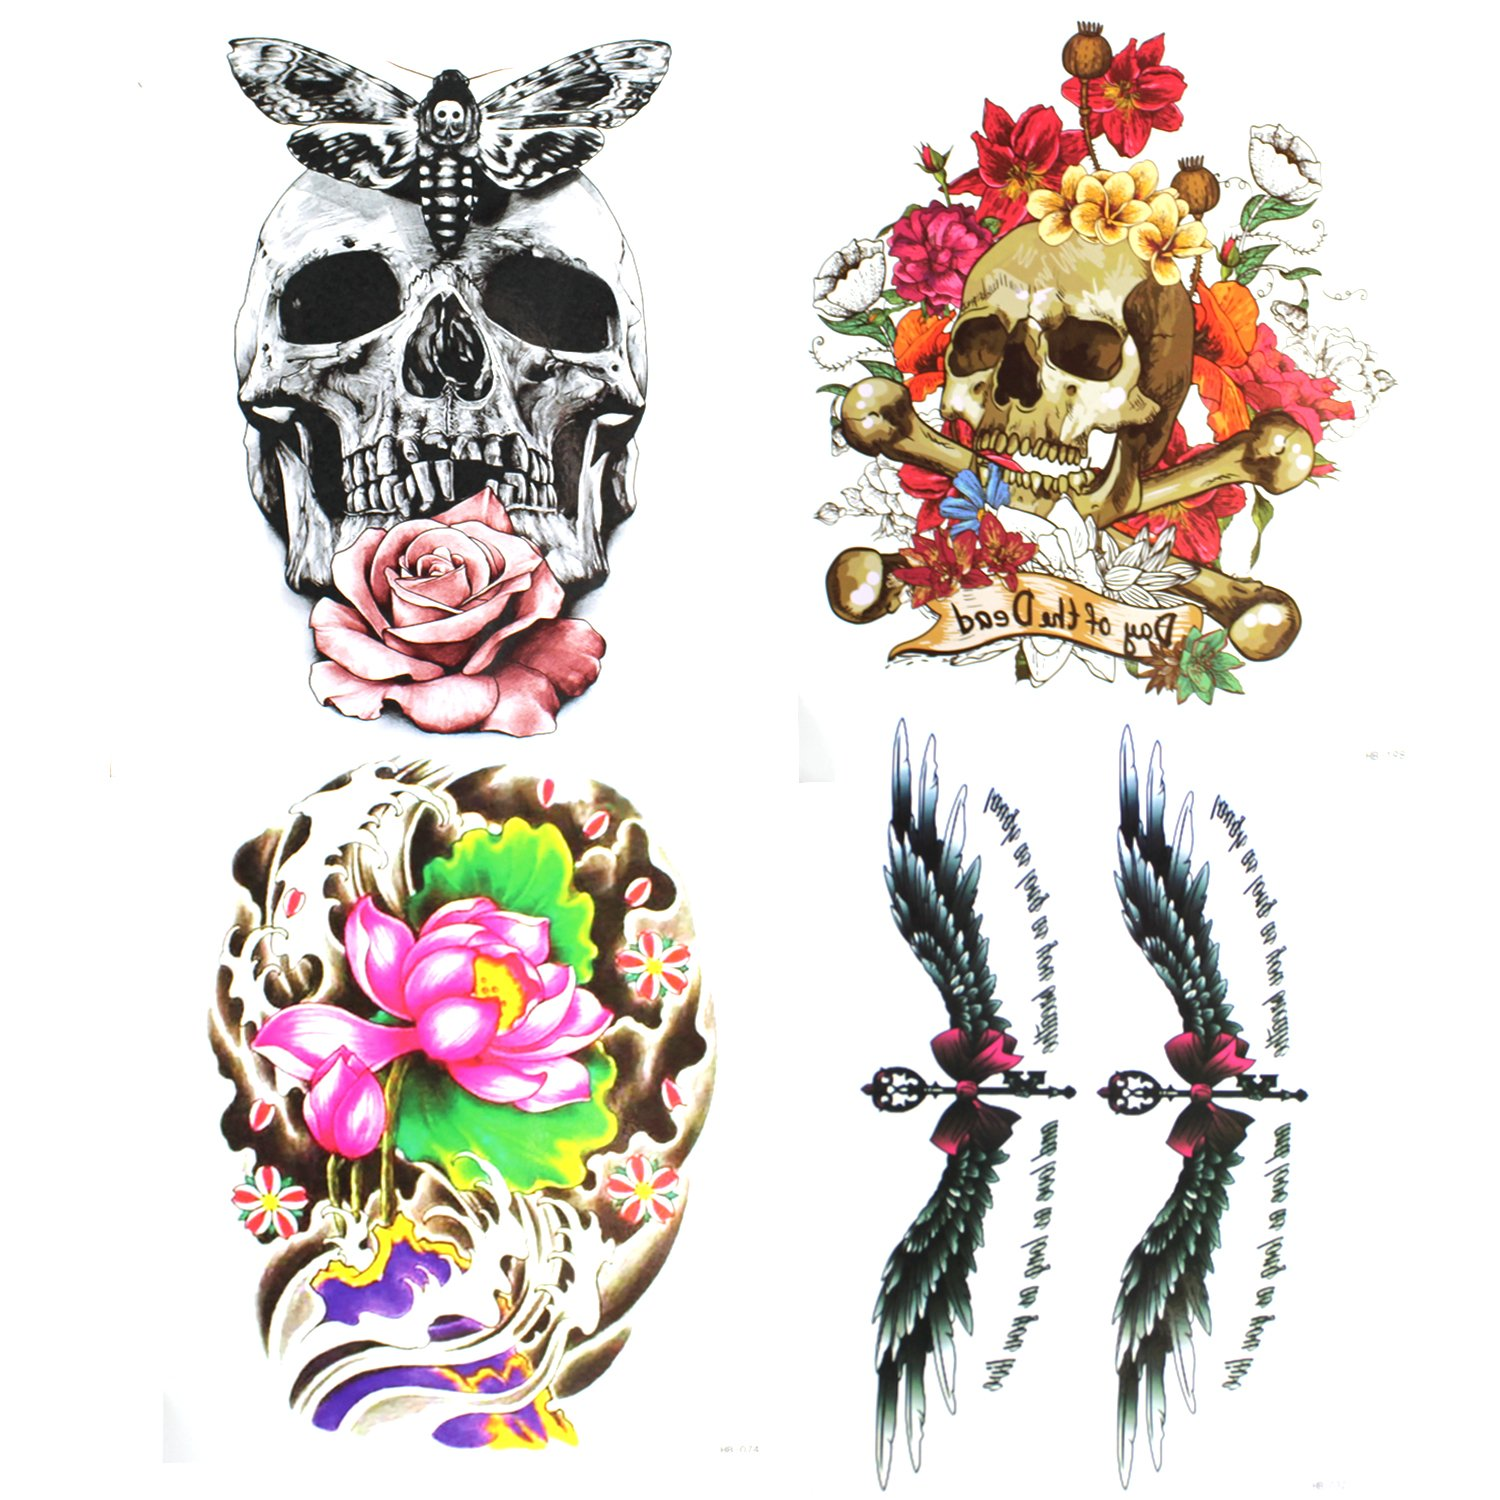 Alohha Large Lady Temporary Tattoo, Lotus Rose Flower Body Art Wing Skull Butterfly Bow Word Fake Tattoo Transfer for Women Men 4 Sheets …